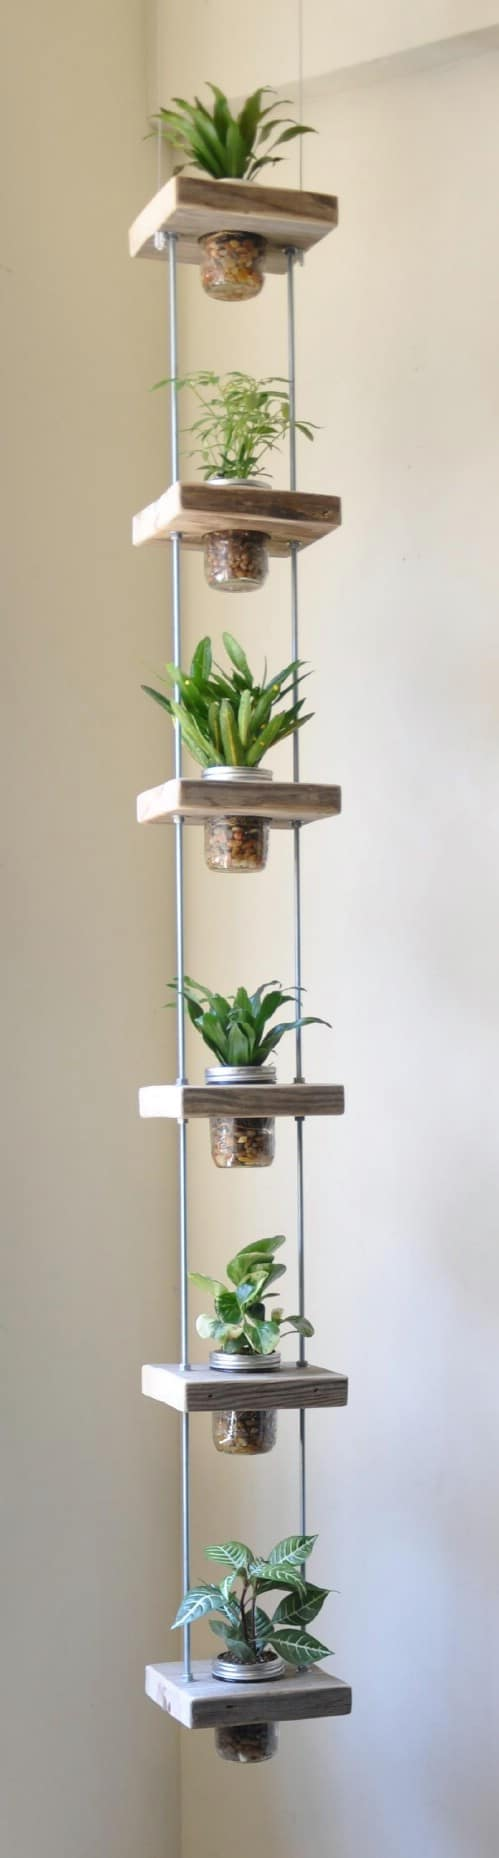 Exceptionnel Simple Hanging Garden